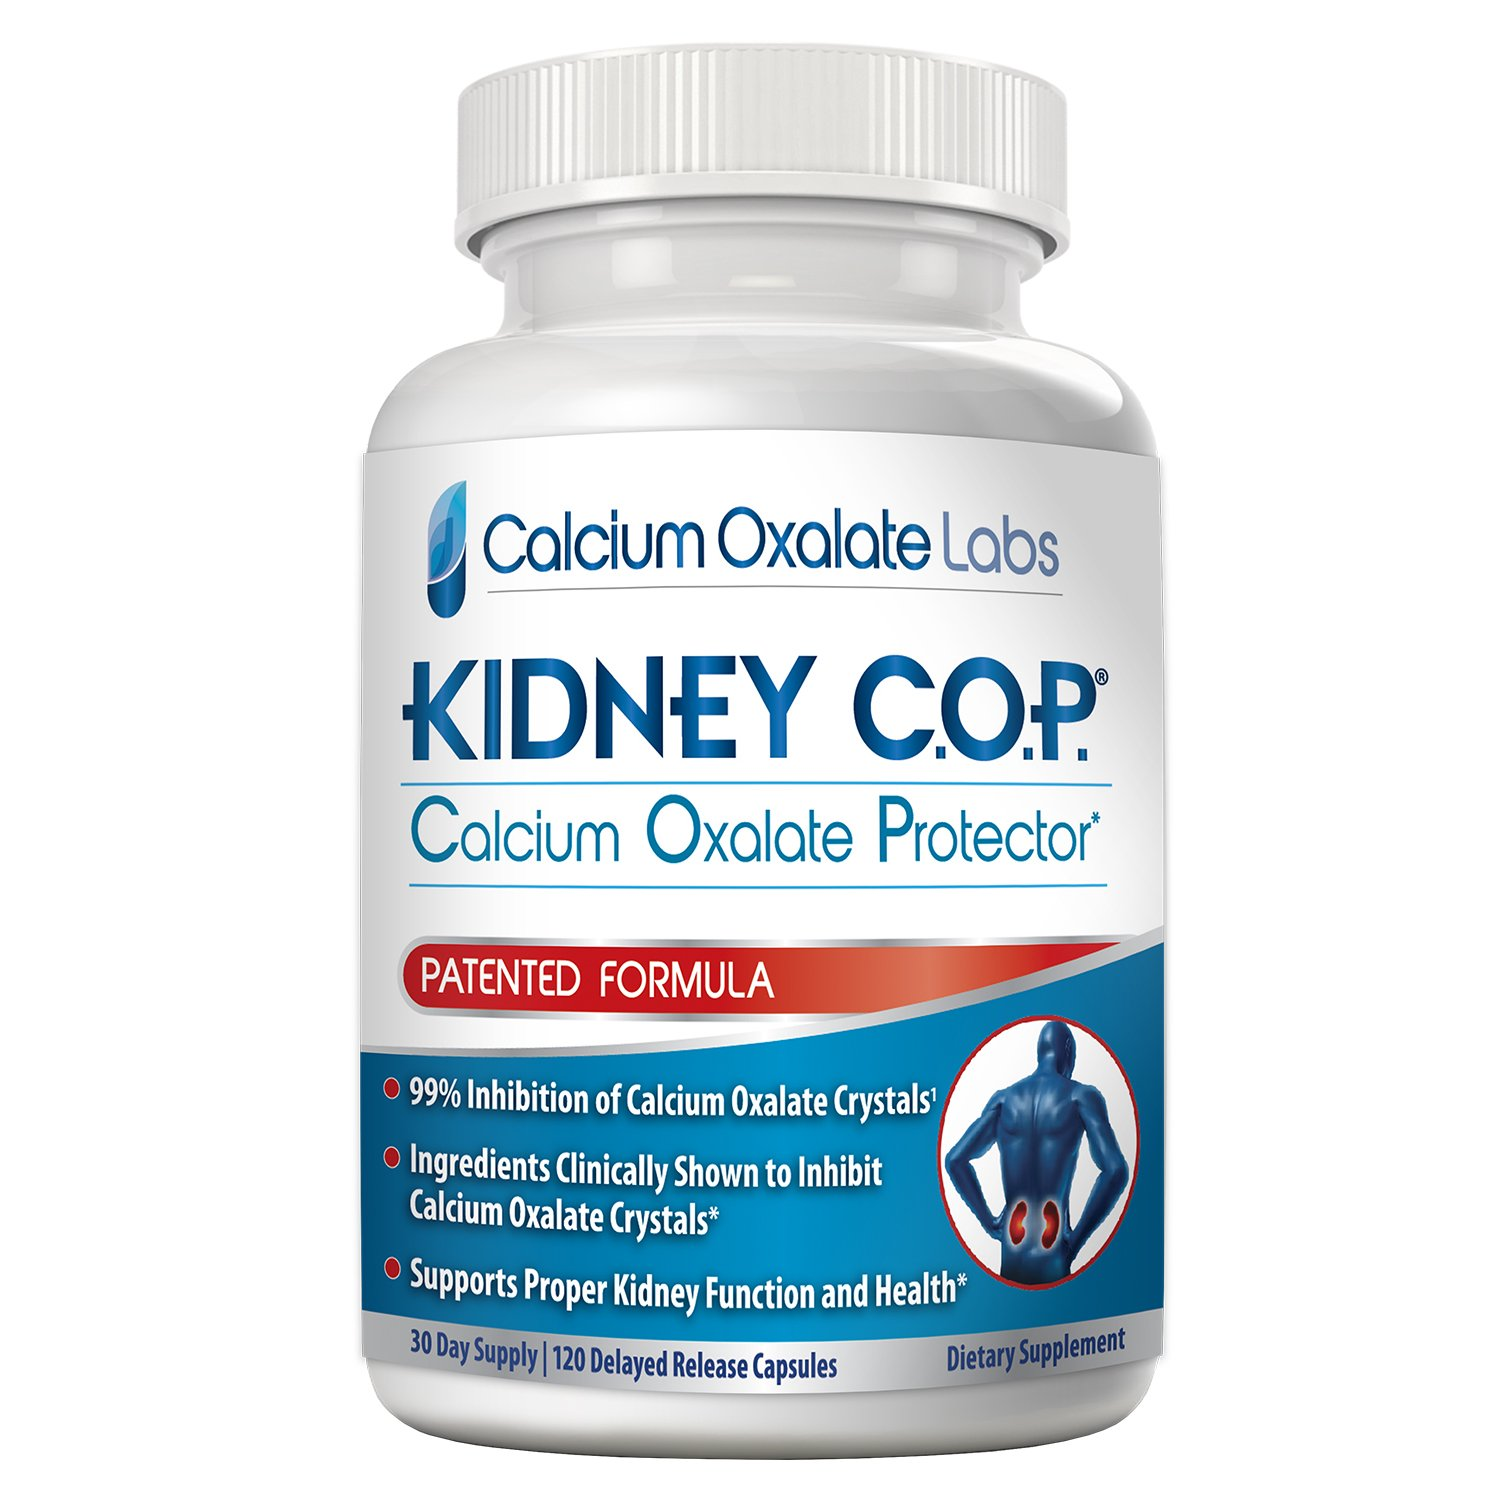 Kidney COP Calcium Oxalate Protector 120 Capsules, Patented Kidney Support for Calcium Oxalate Crystals, Helps Stops Recurrence of Stones, Stronger Than Chanca Piedra Stone Breaker & Crusher Products